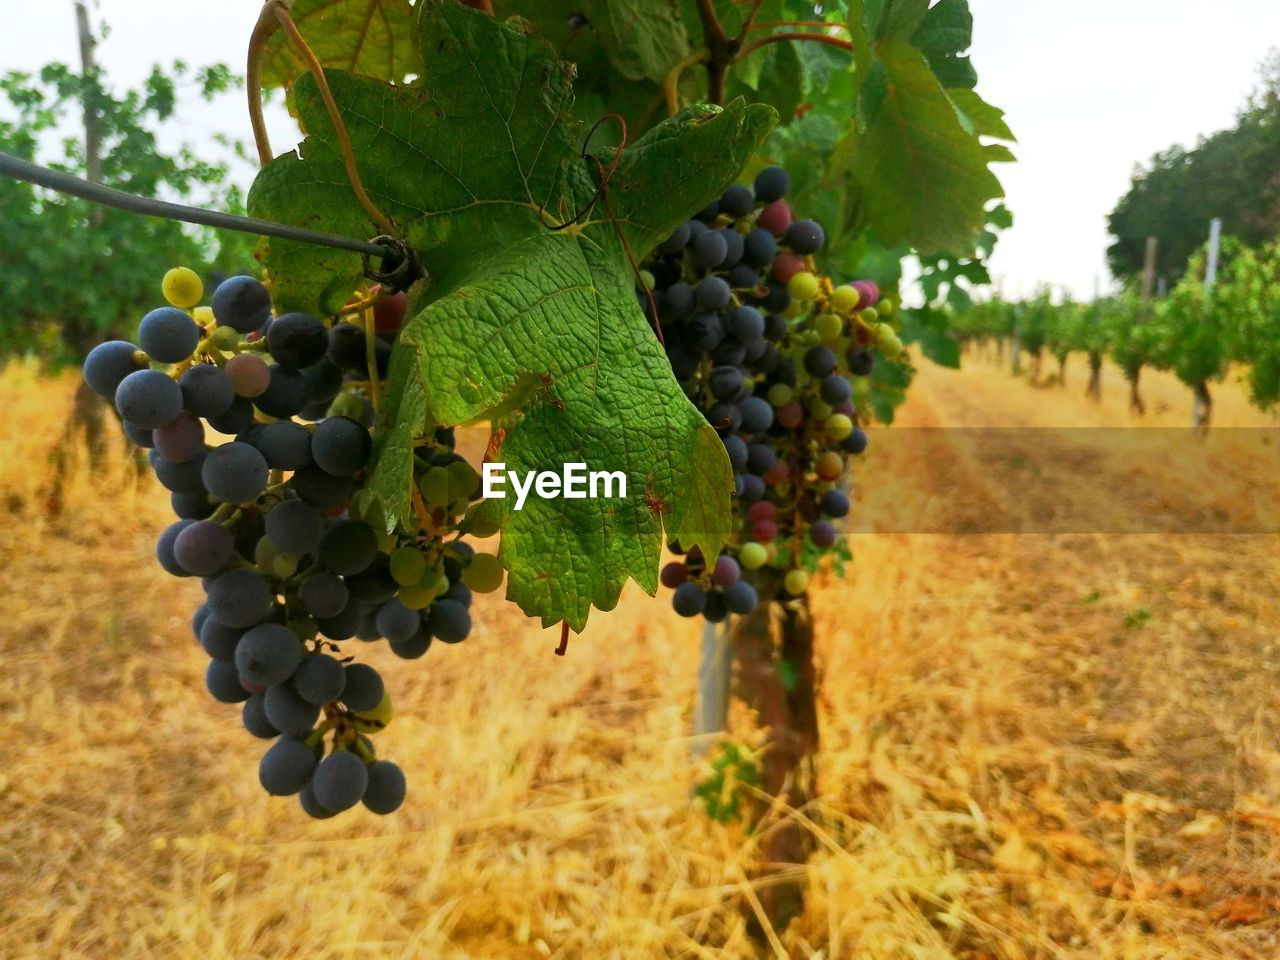 fruit, healthy eating, food, food and drink, growth, vineyard, grape, plant, agriculture, nature, wellbeing, freshness, day, vine, winemaking, field, bunch, no people, leaf, landscape, outdoors, ripe, plantation